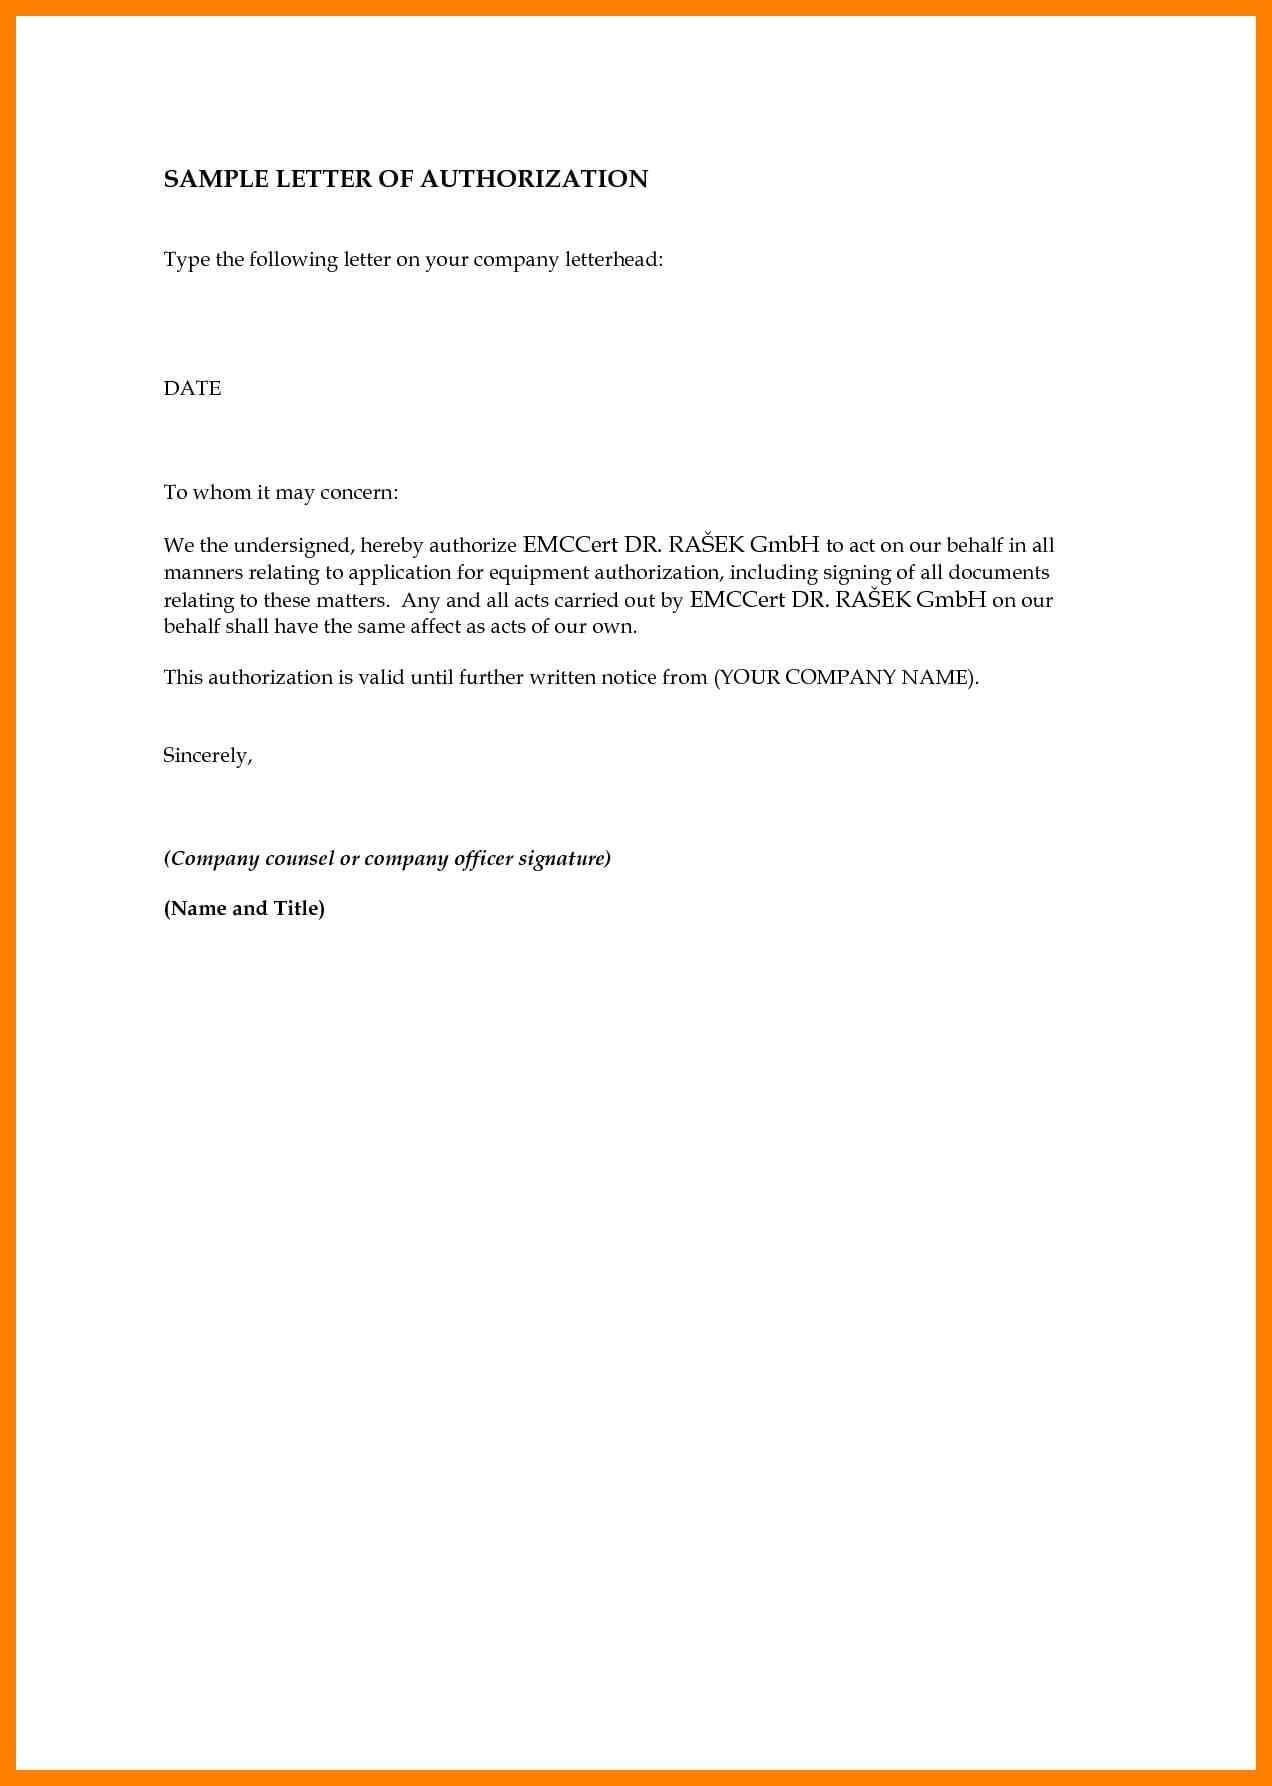 Sample Authorization Letter Birth Certificate Nso Fresh In Certificate Of Authorization Template